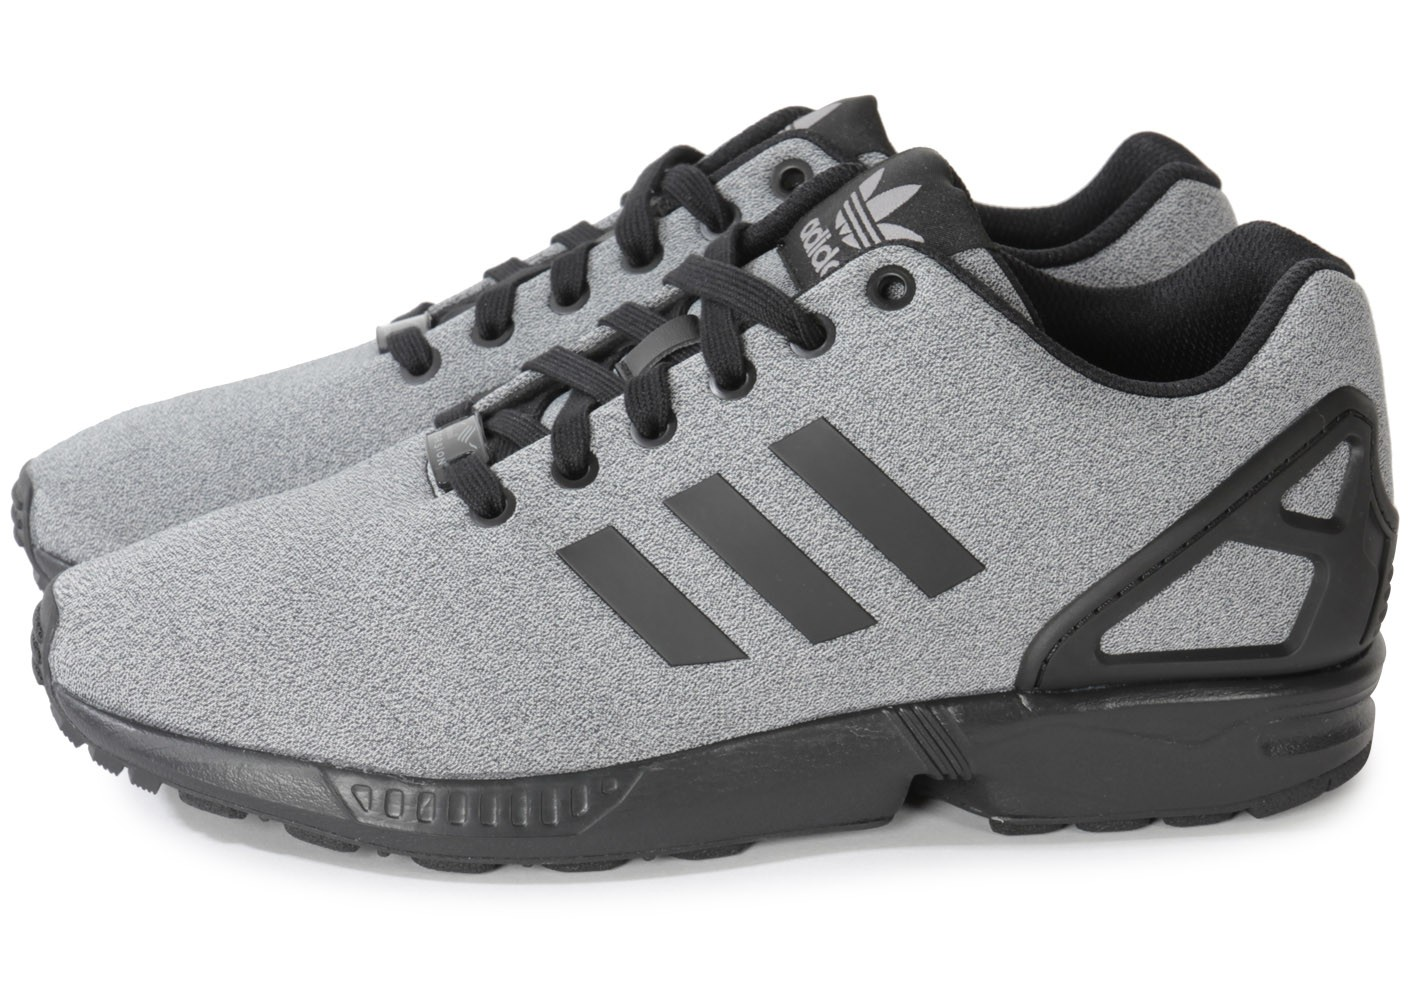 Zx5102 Adidas Homme Flux Zx 2016 Chaussures W29IDHE